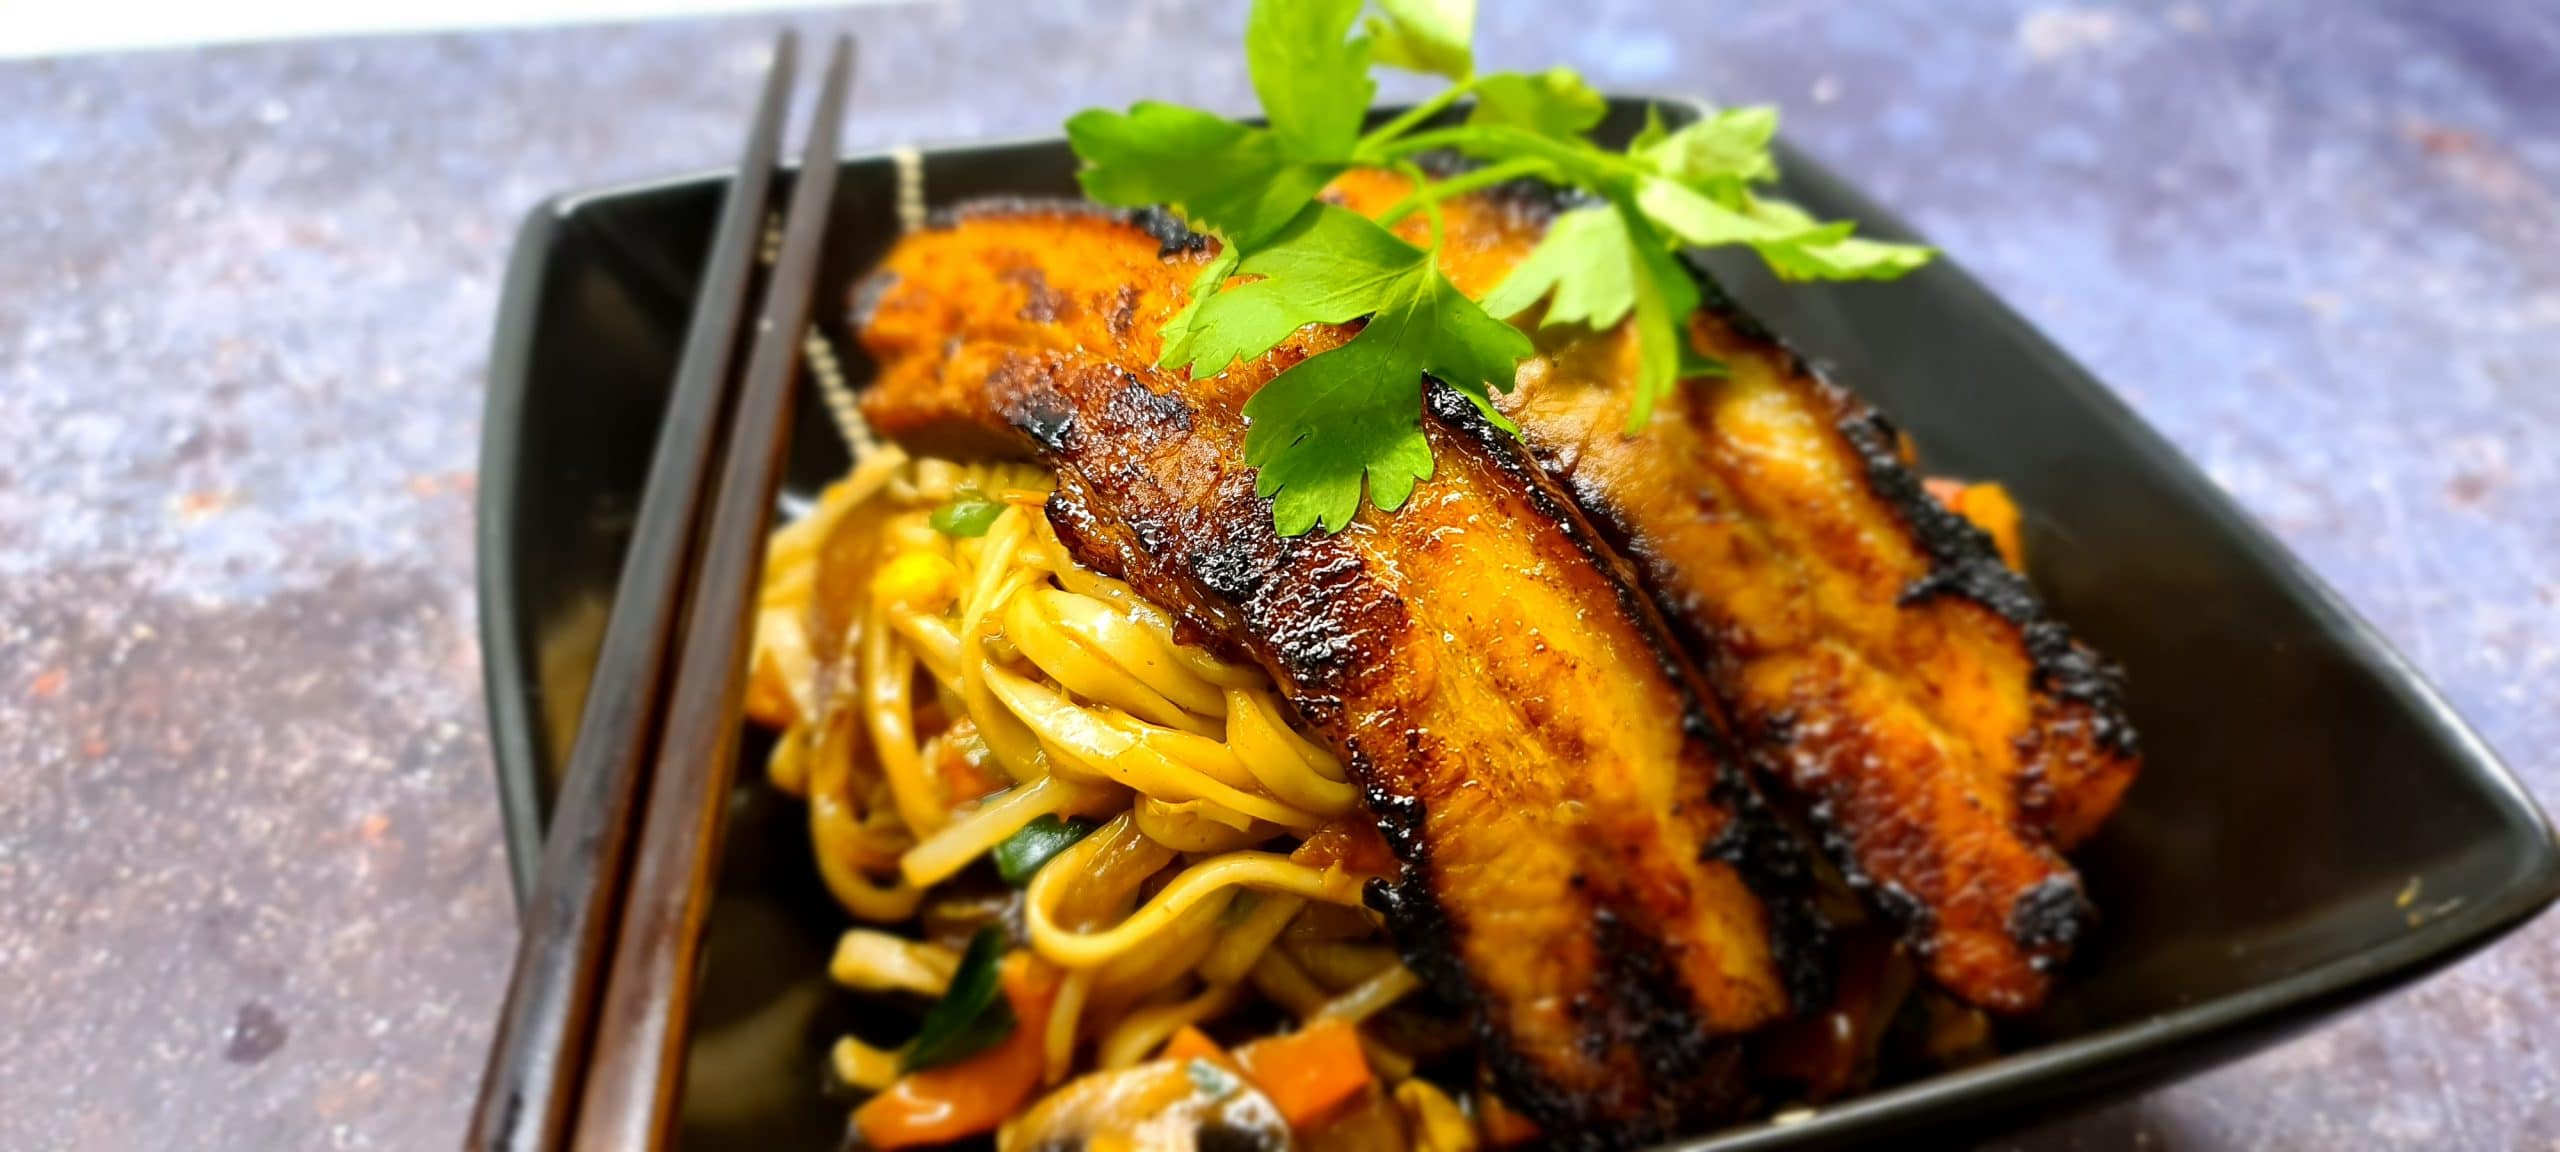 You are currently viewing Stir Fry Udon Noodles with Char Siu Pork